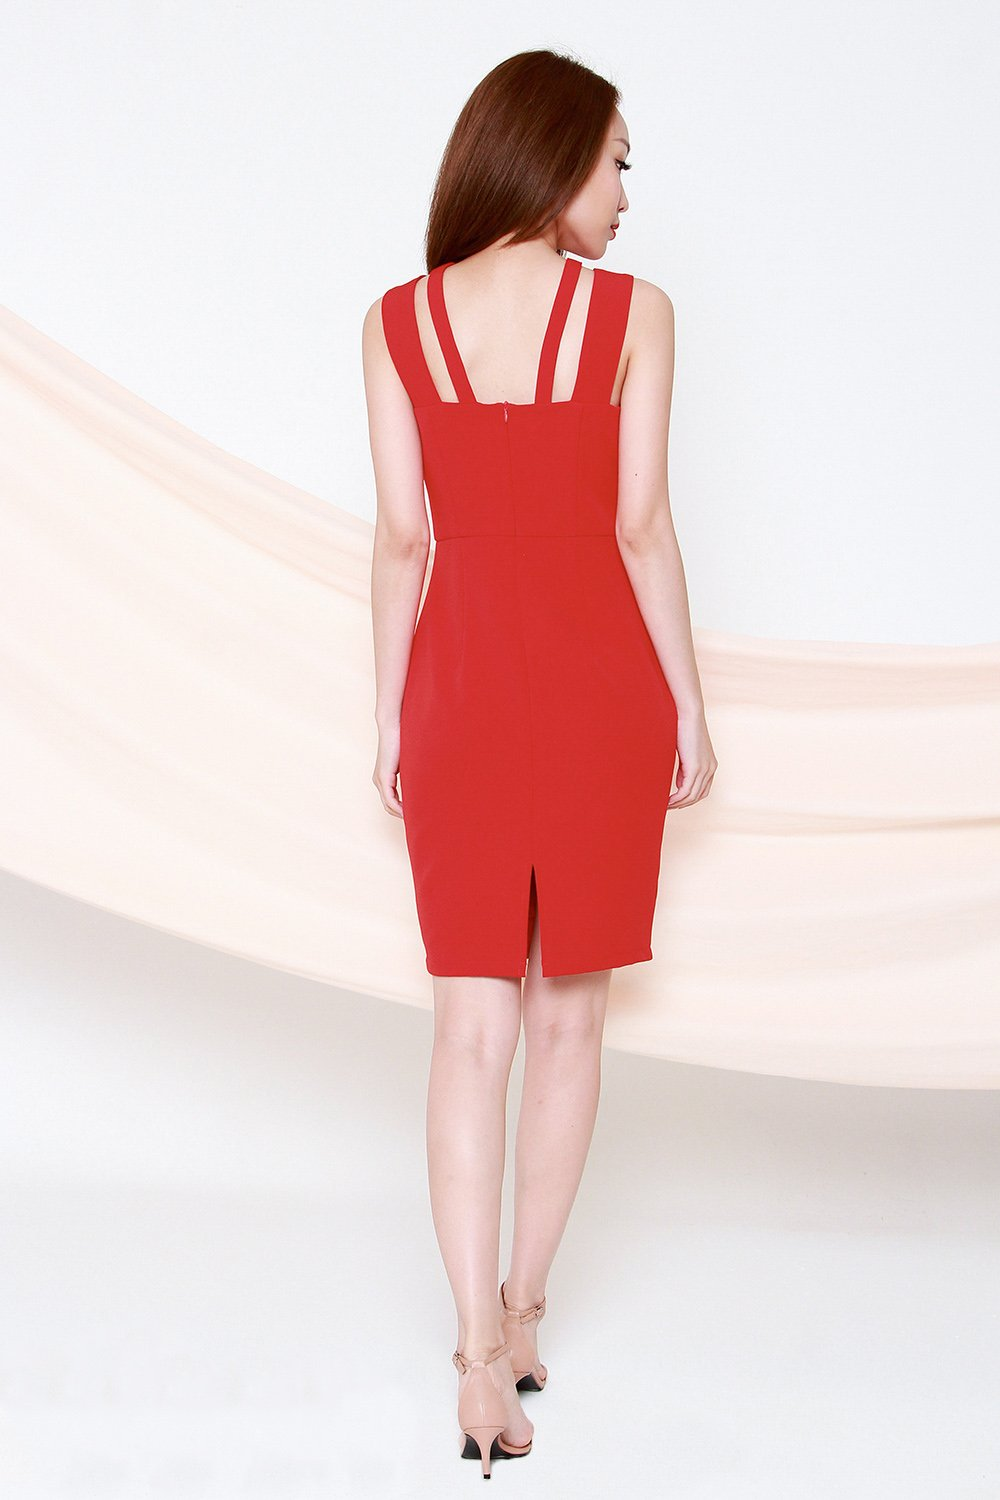 KIRA RED DOUBLE STRAP DRESS